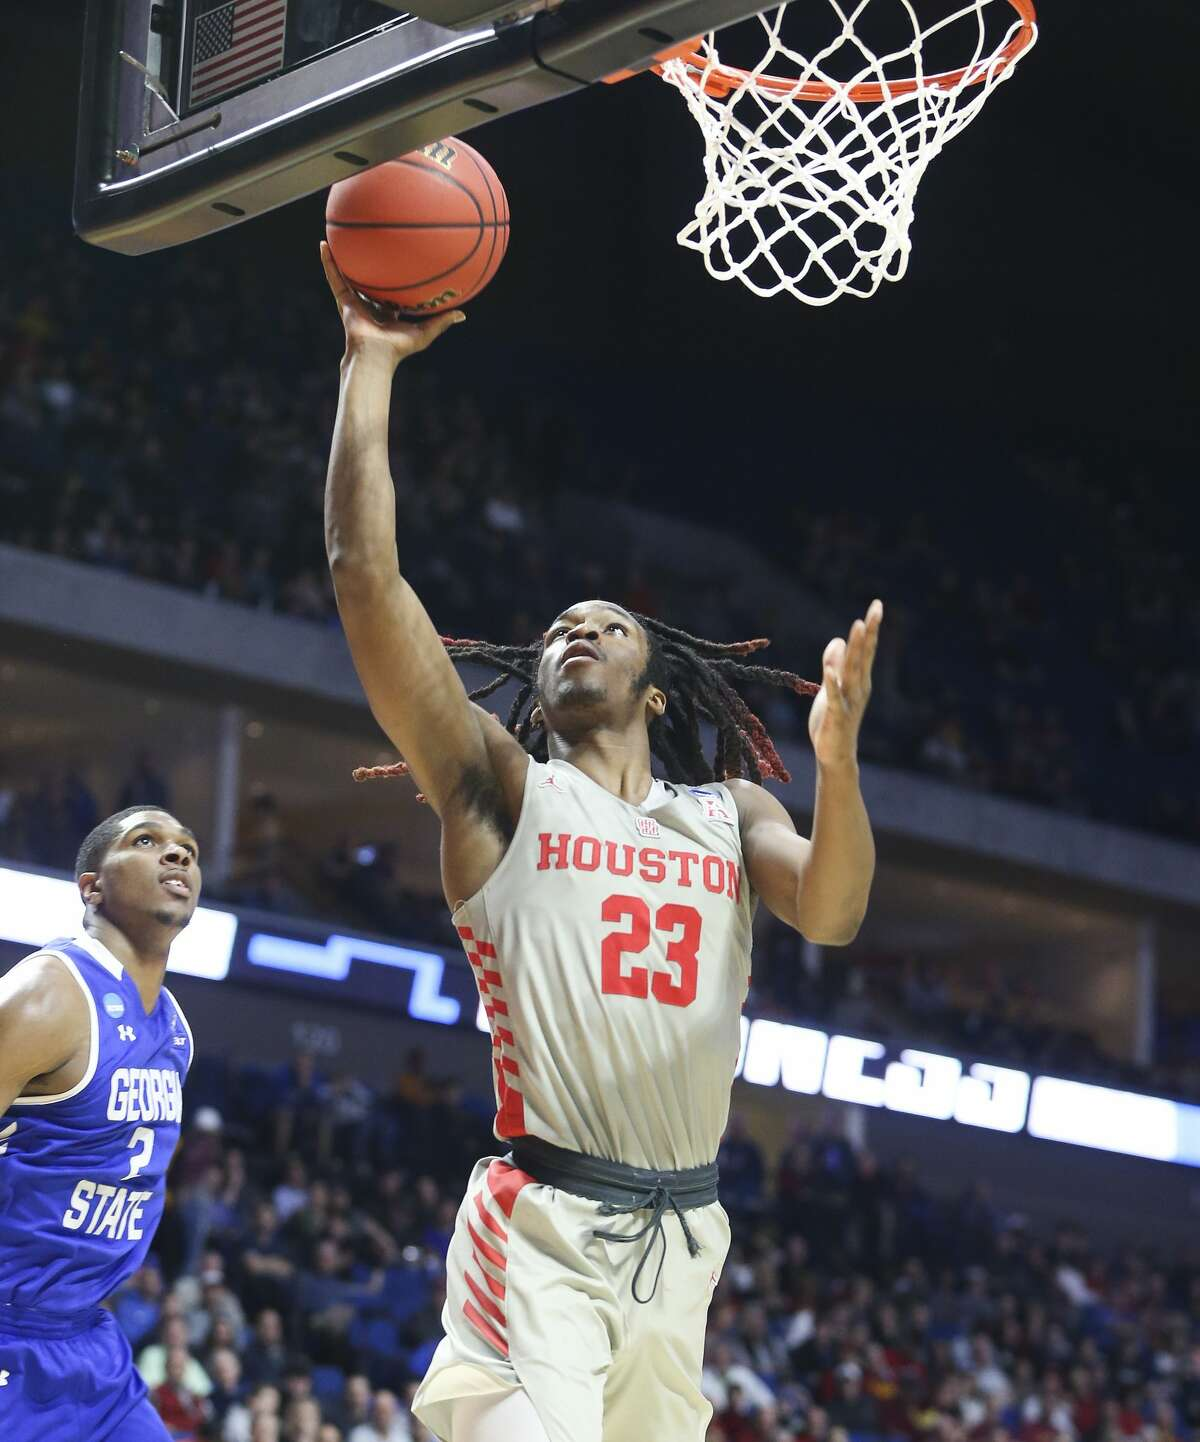 Houston Cougars forward Cedrick Alley Jr. (23) drives to the basket past Georgia State Panthers forward Malik Benlevi (2) at BAK Center on Friday, March 22, 2019 in Tulsa. Houston won the game 84-55.